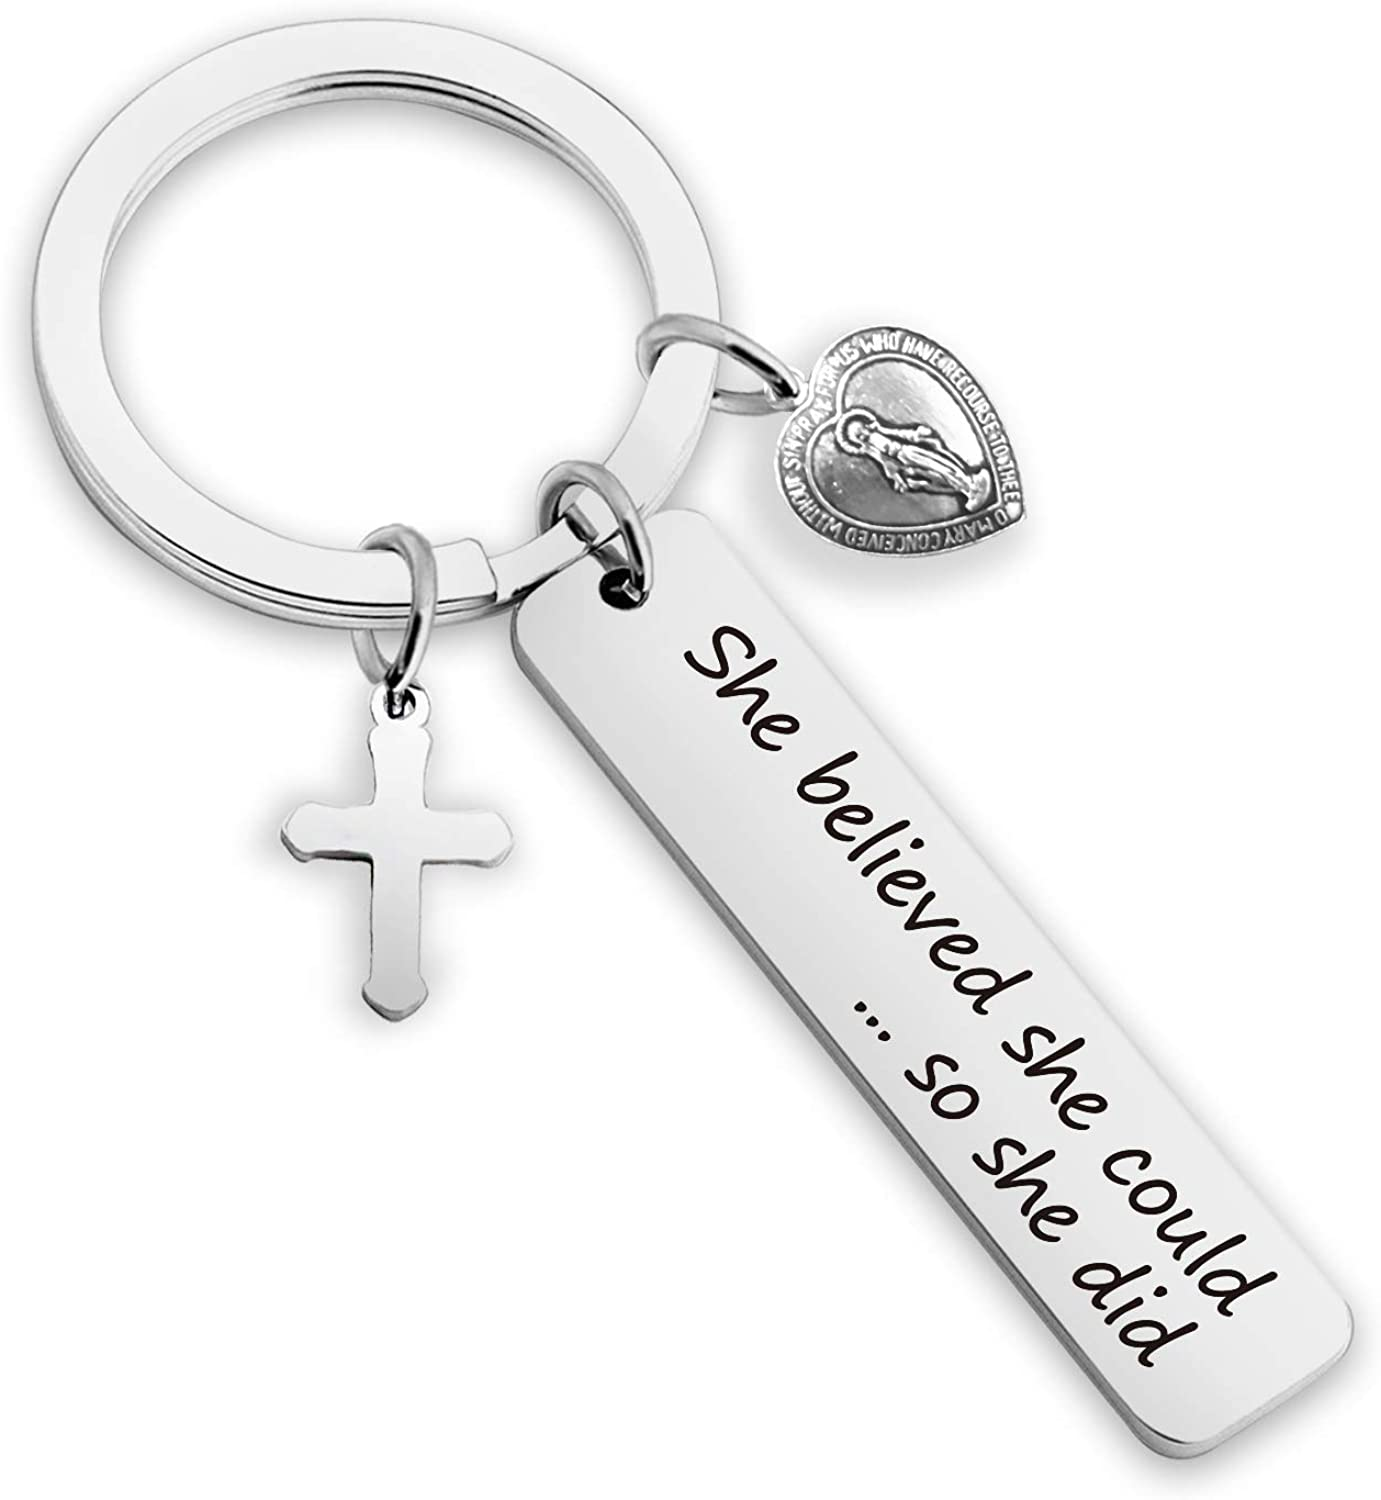 G-Ahora Christian Keychain She Believe She Could Mary Christian Jewelry Keychain Cross Religious Gift Bible Scripture Keychain Goddess Jewelry